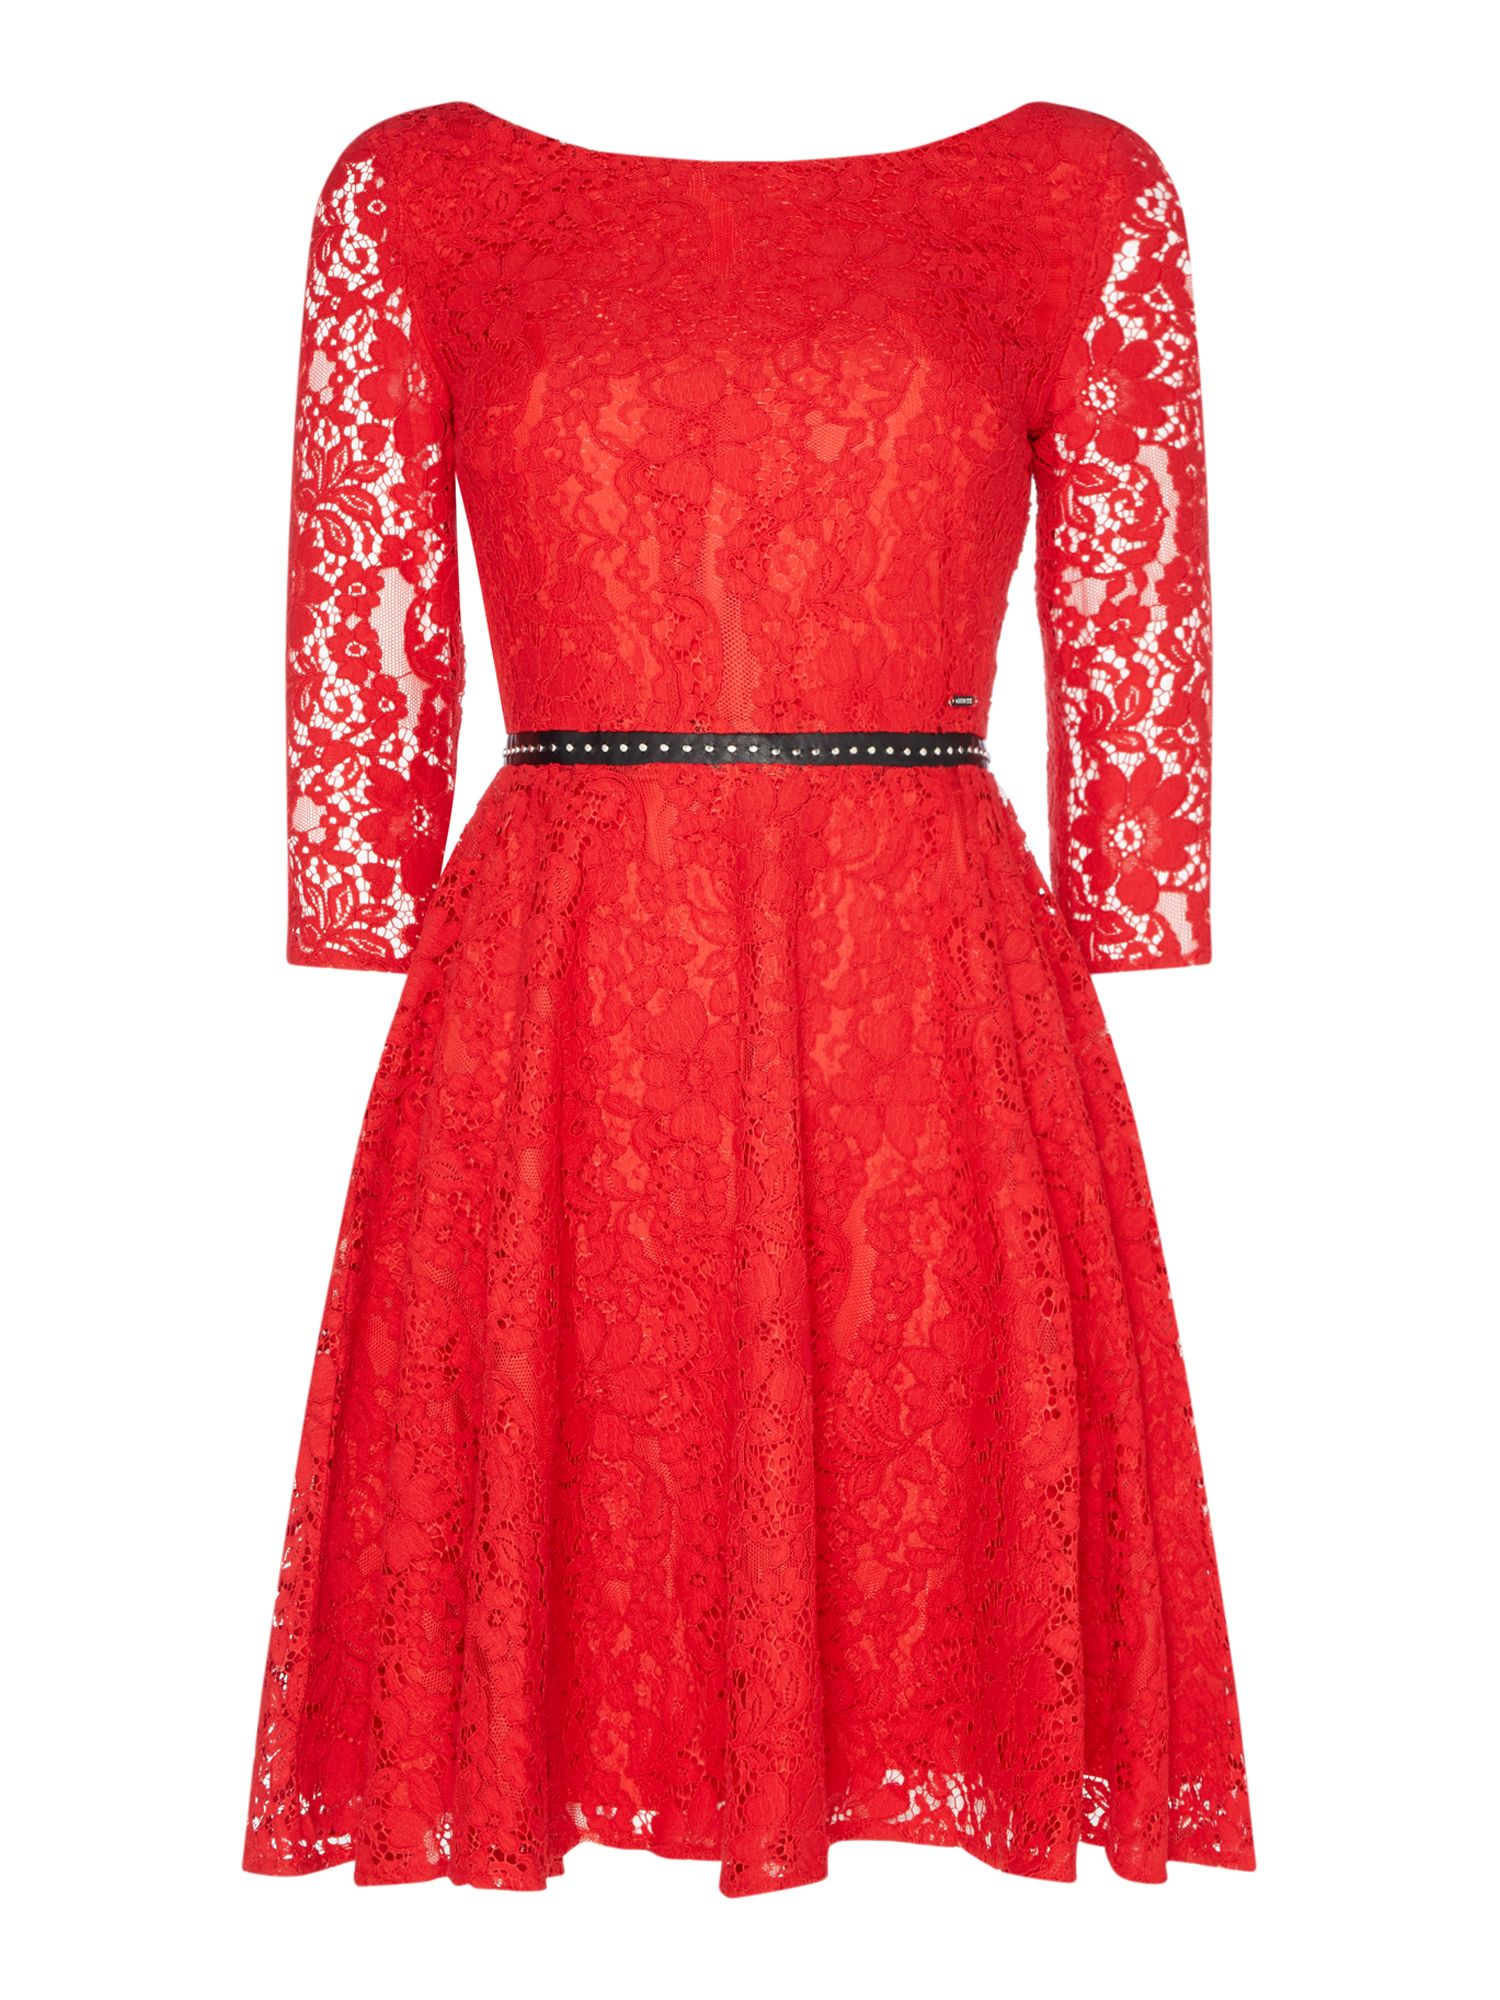 Guess Long Sleeve Lace Fit & Flare Dress, Red